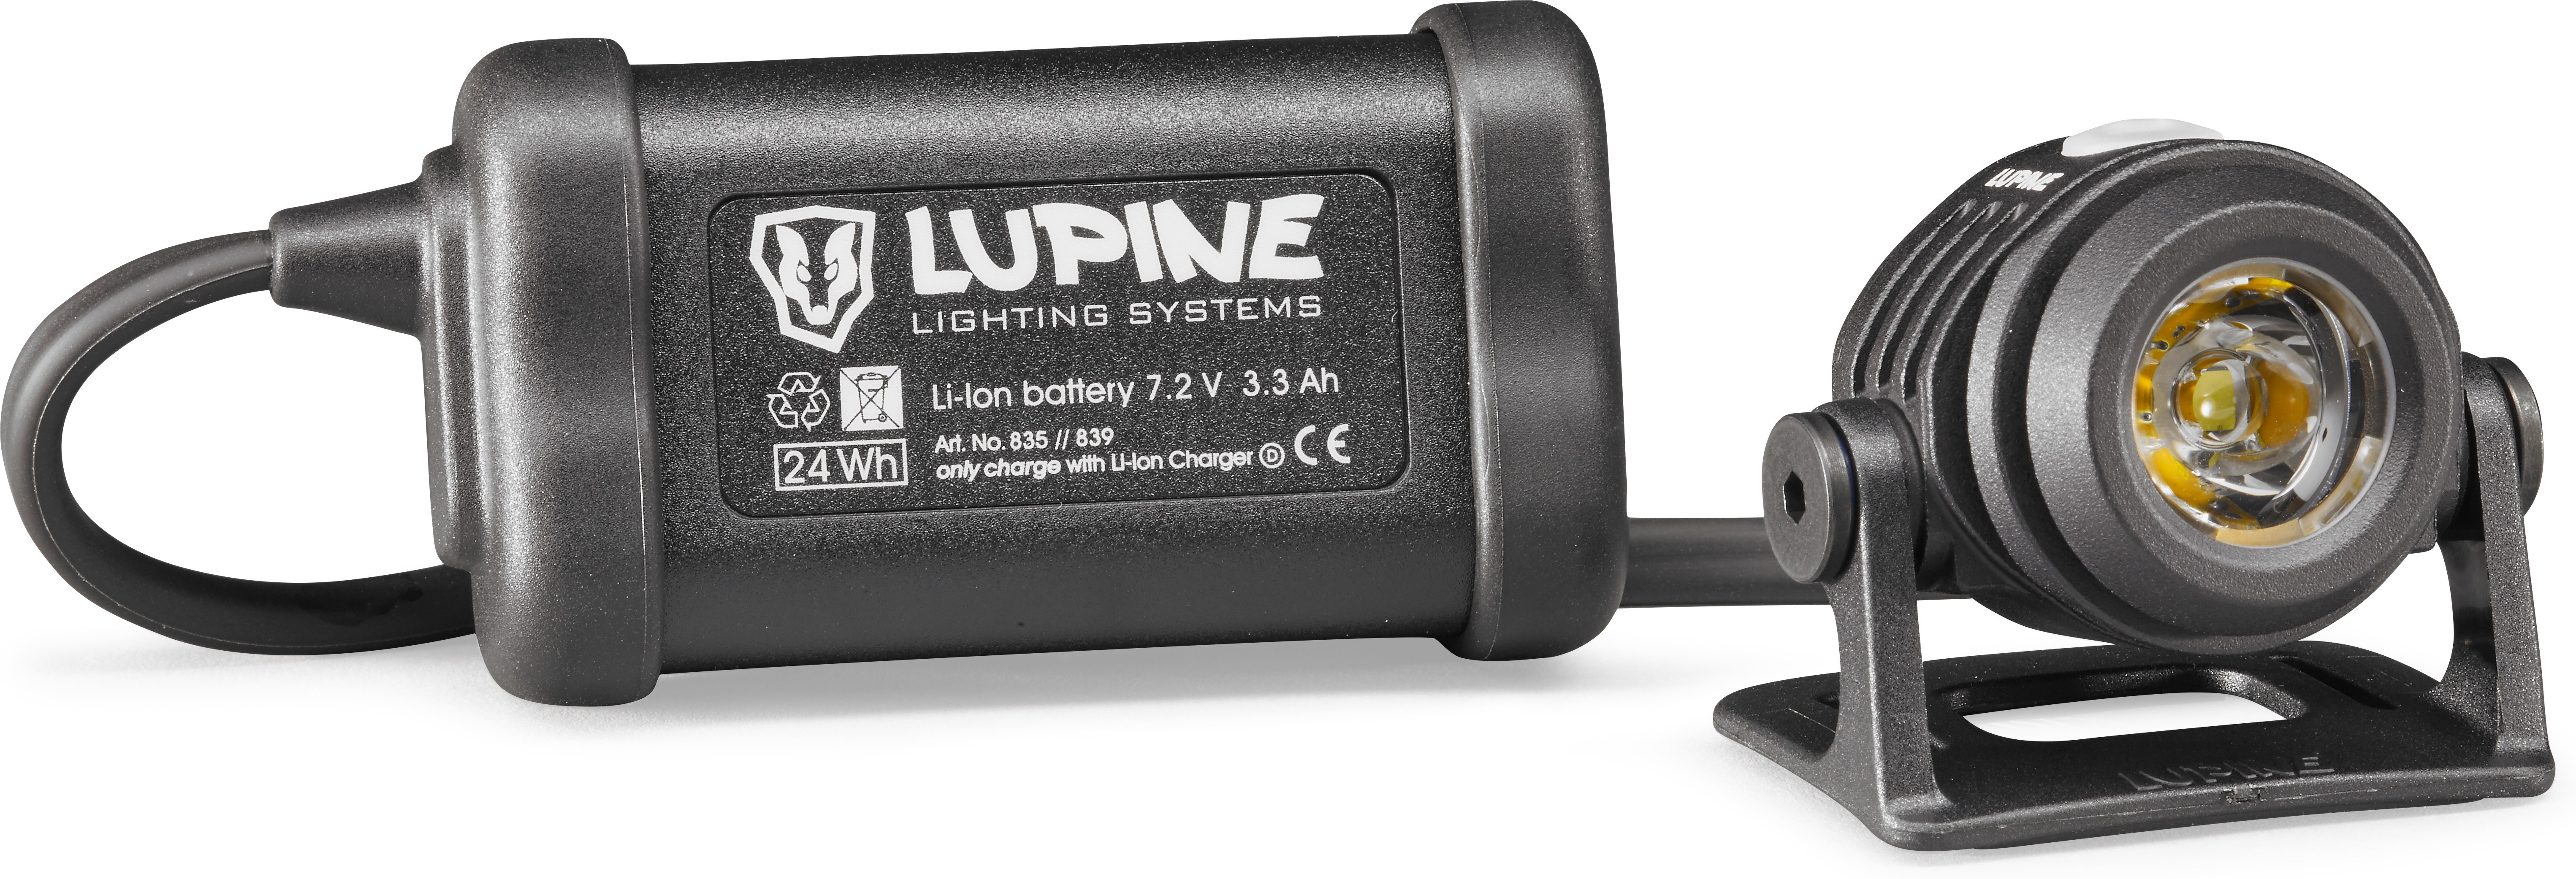 Lupine Neo 4 (900 Lm)